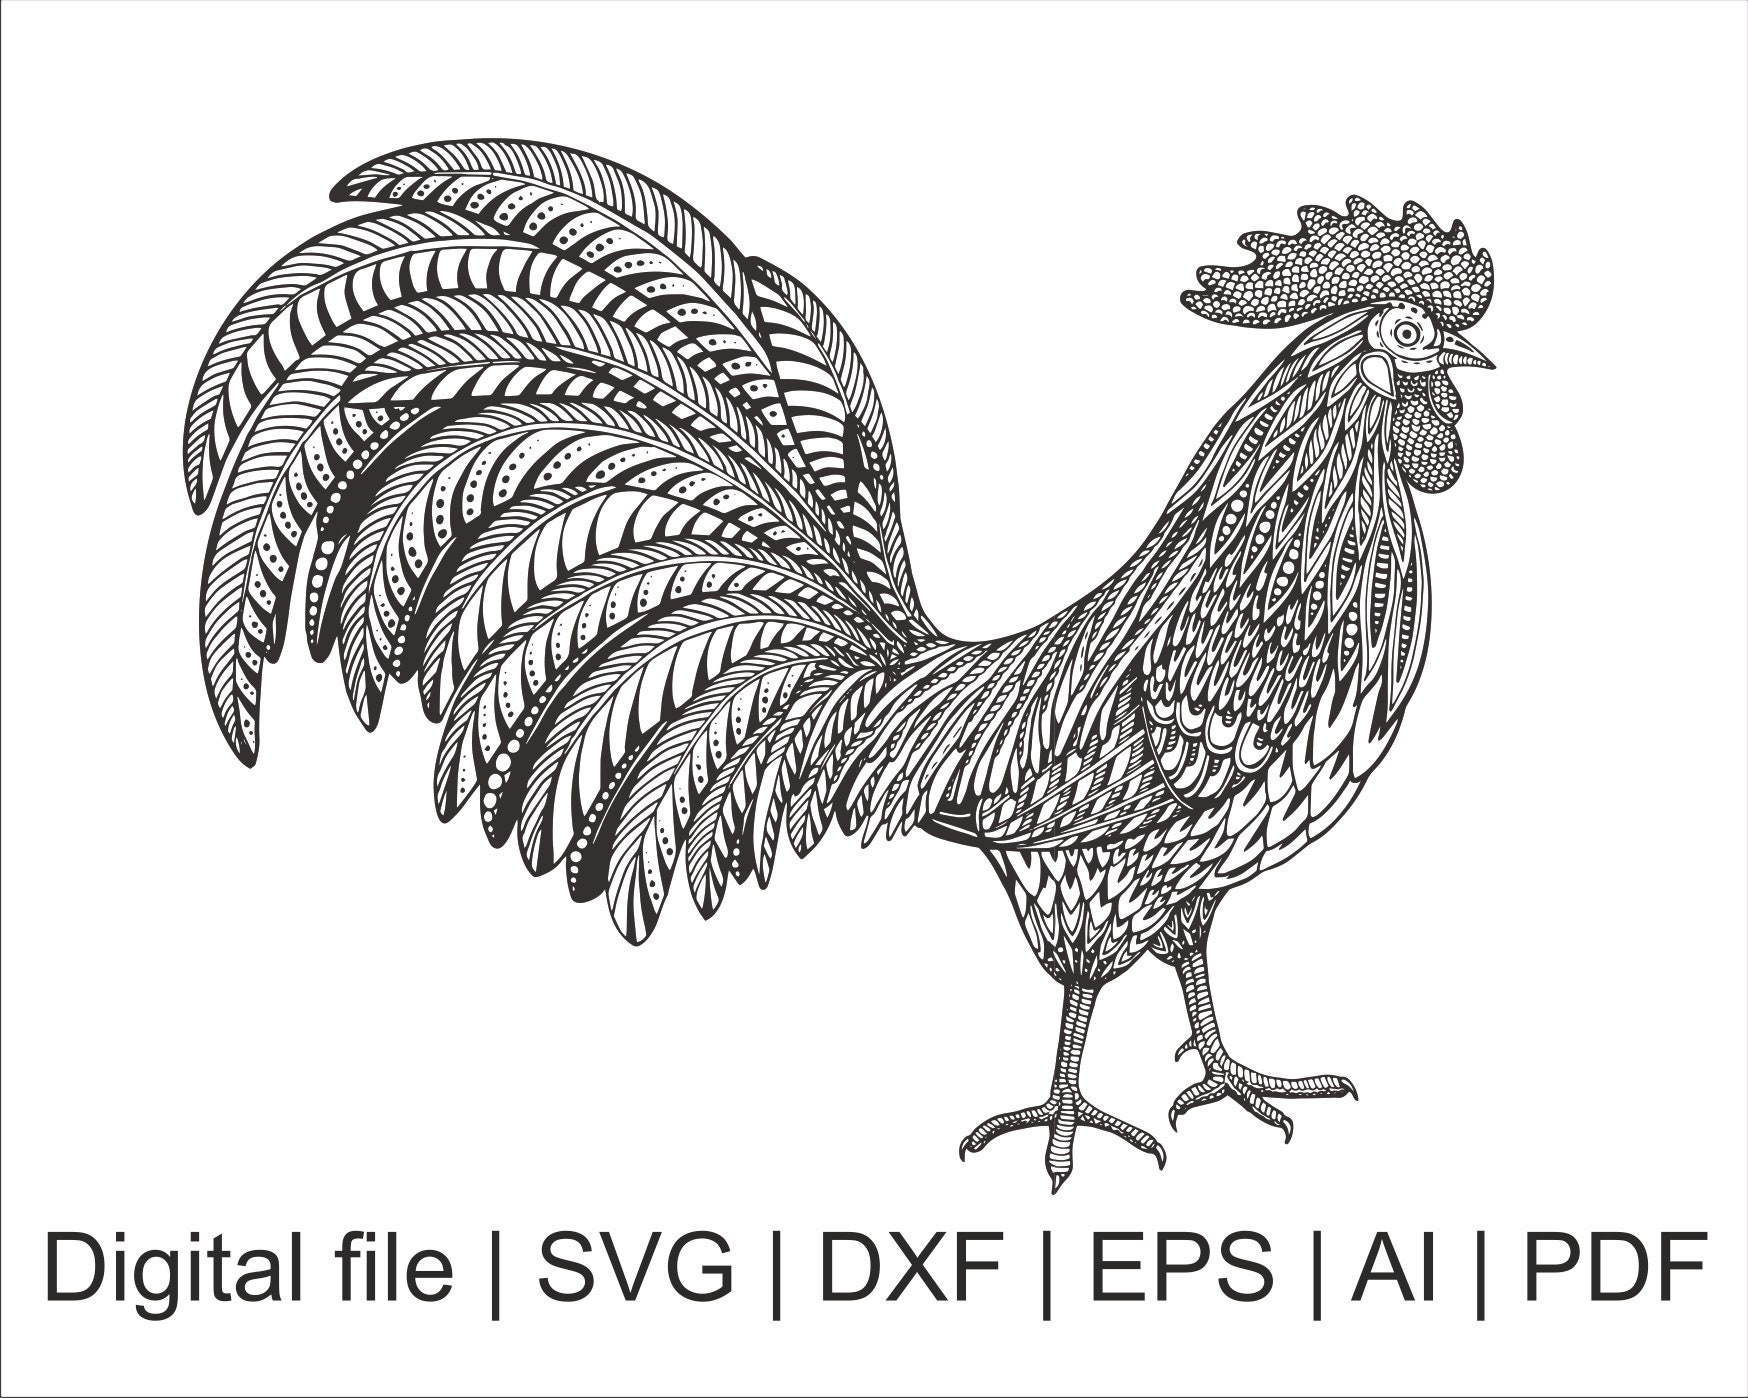 195+ Rooster Mandala Svg Free – SVG,PNG,DXF,EPS include